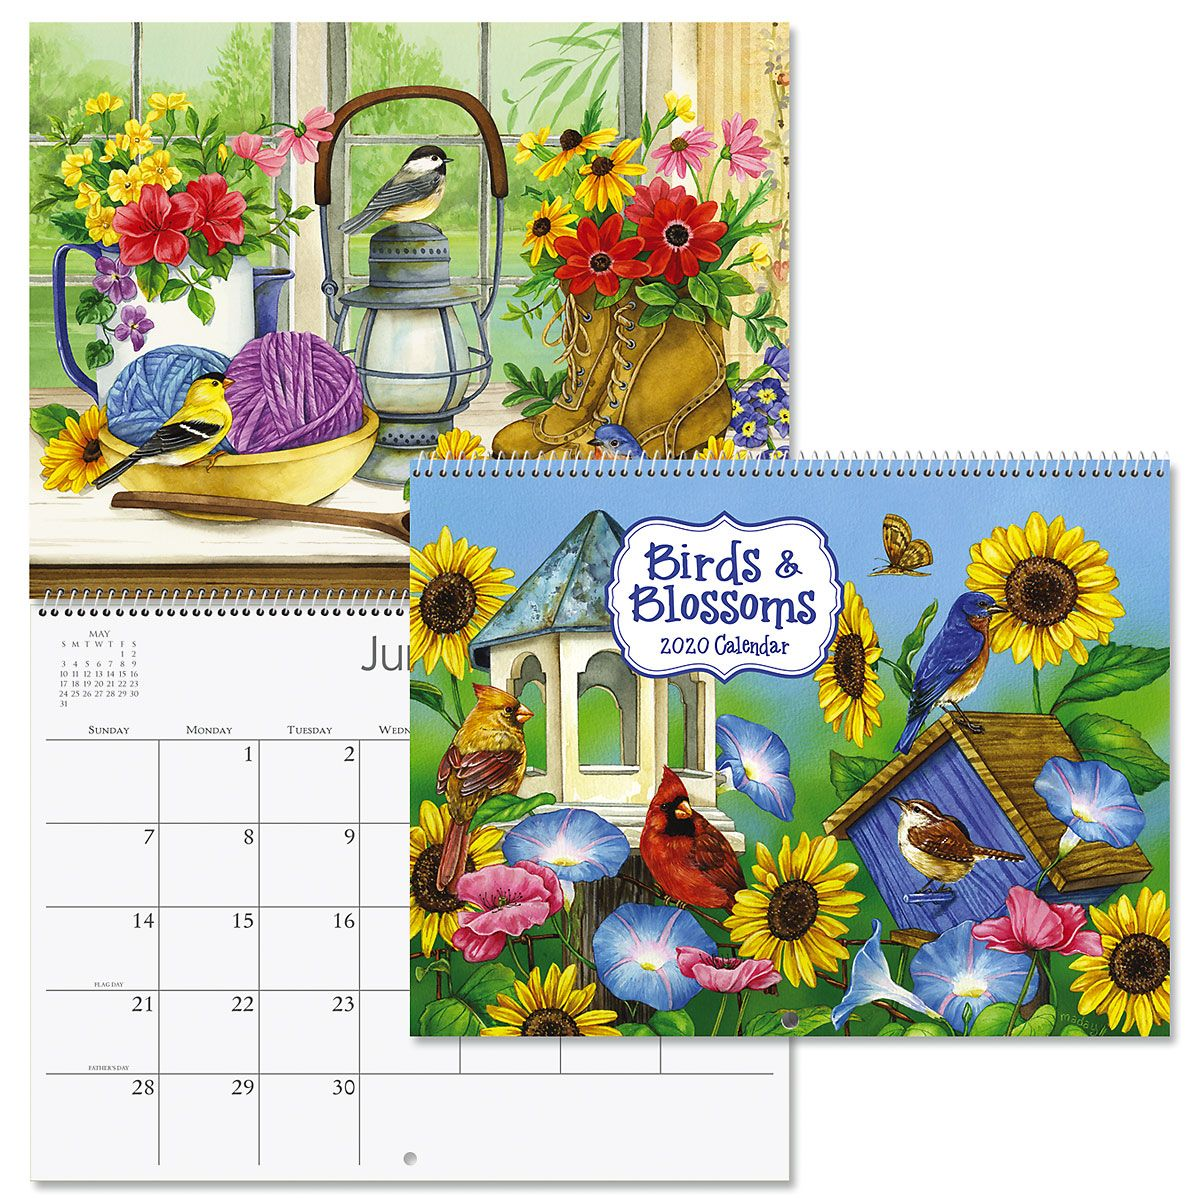 2020 Birds & Blossoms Wall Calendar